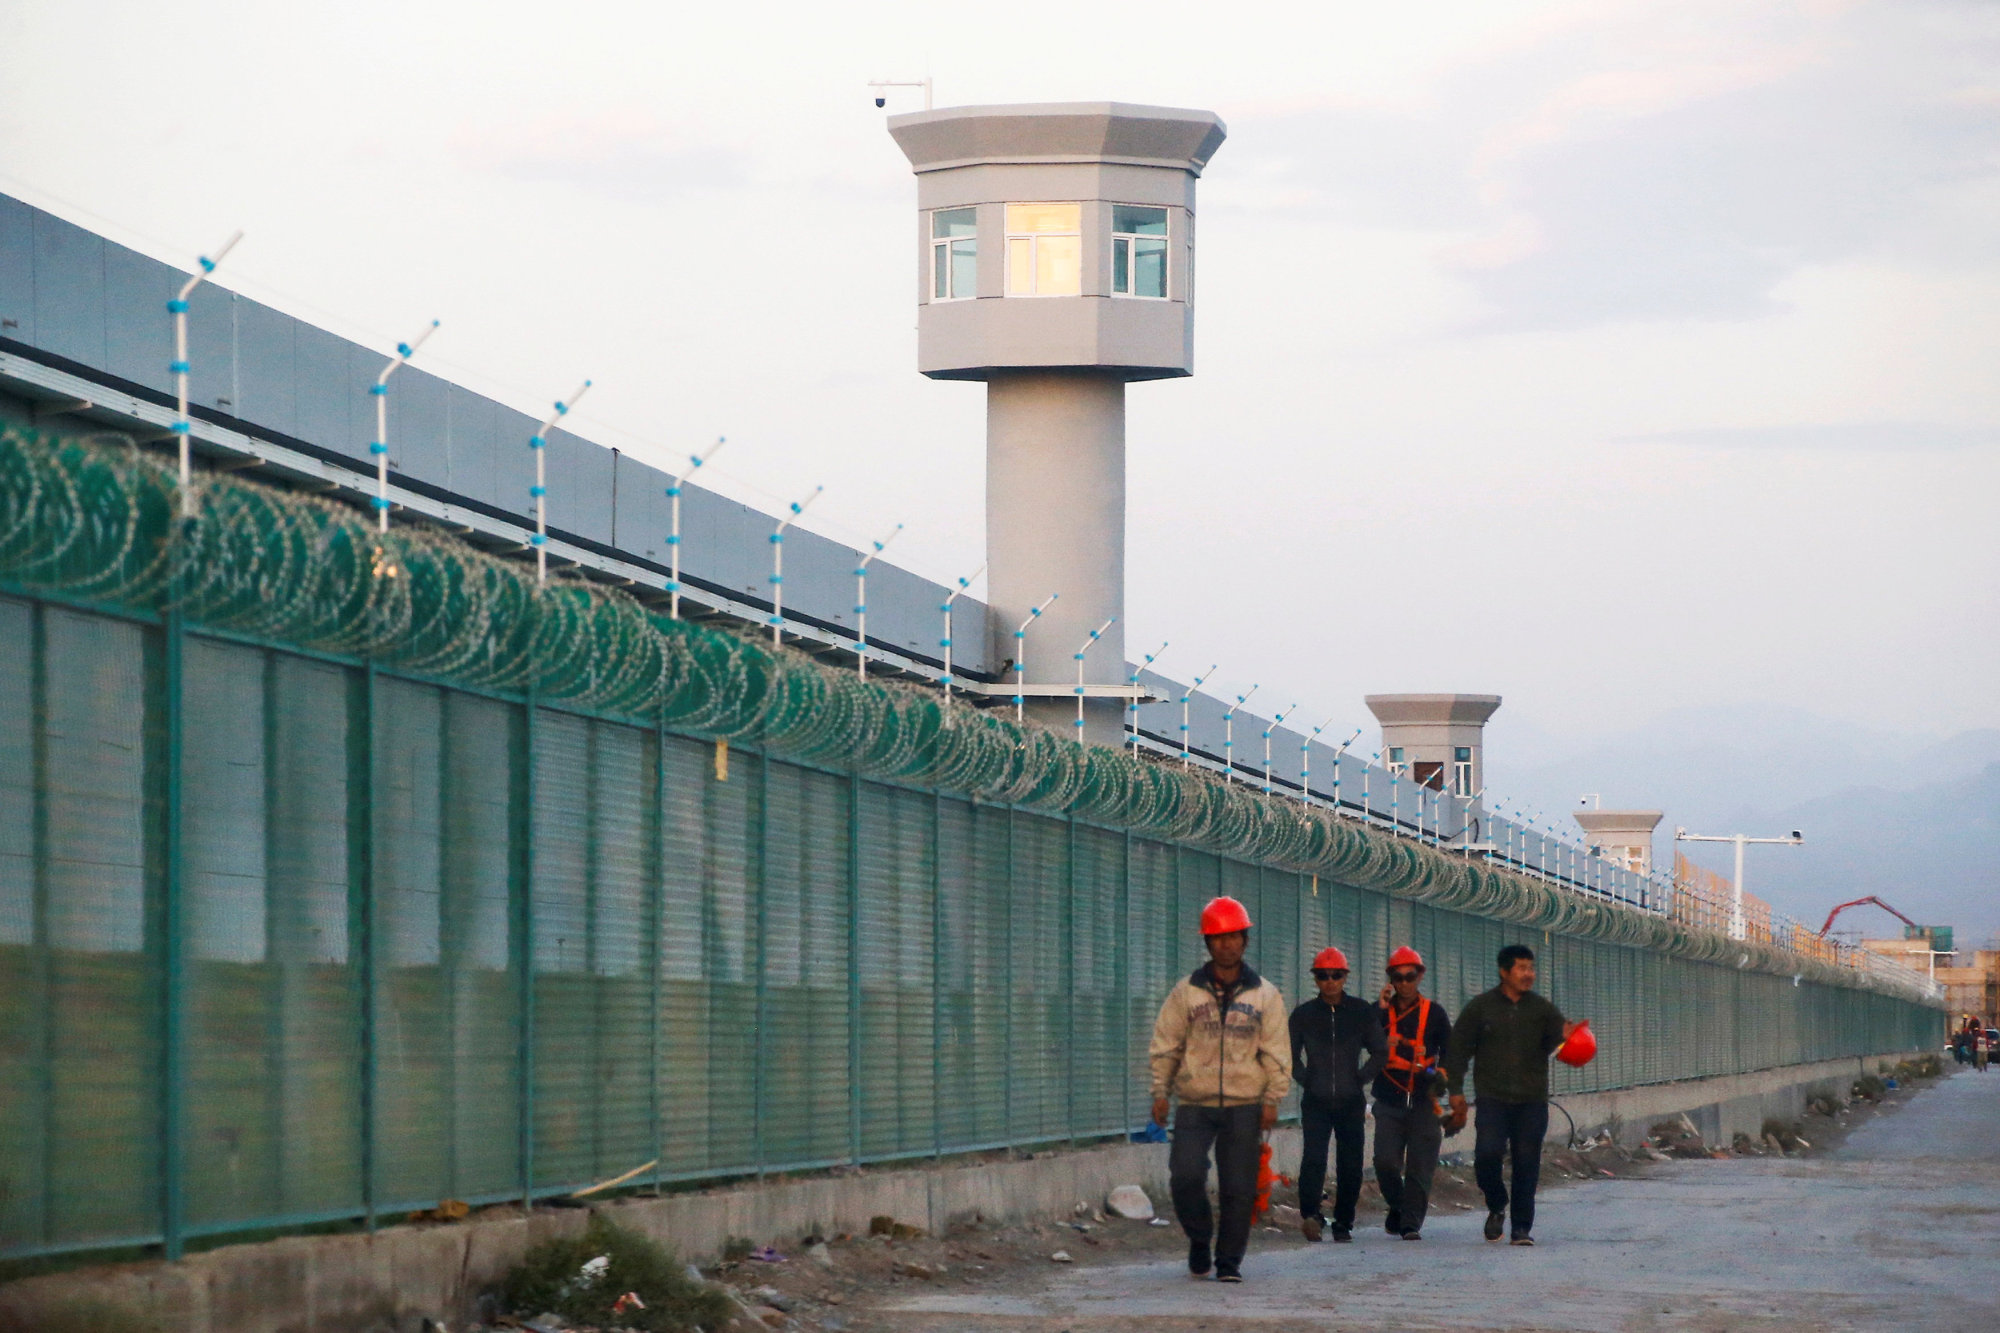 Workers walk by the perimeter fence of what is officially known as a vocational skills education center in Dabancheng, in Xinjiang Uighur Autonomous Region, China, on Sept. 4. | REUTERS